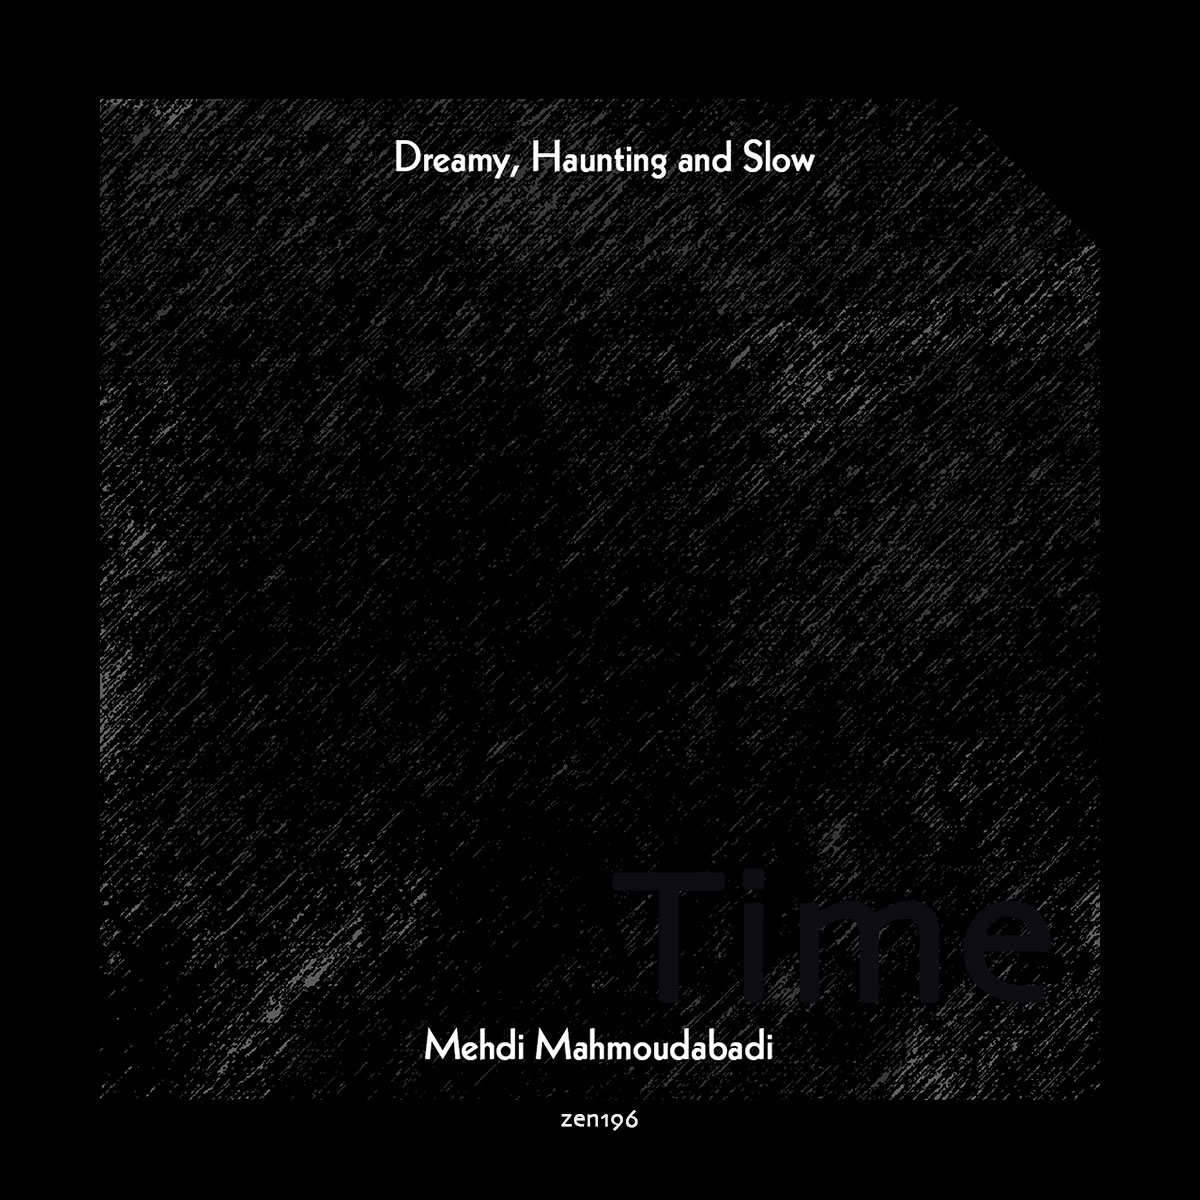 Mehdi Mahmoudabadi – Dreamy, Haunting and Slow EP